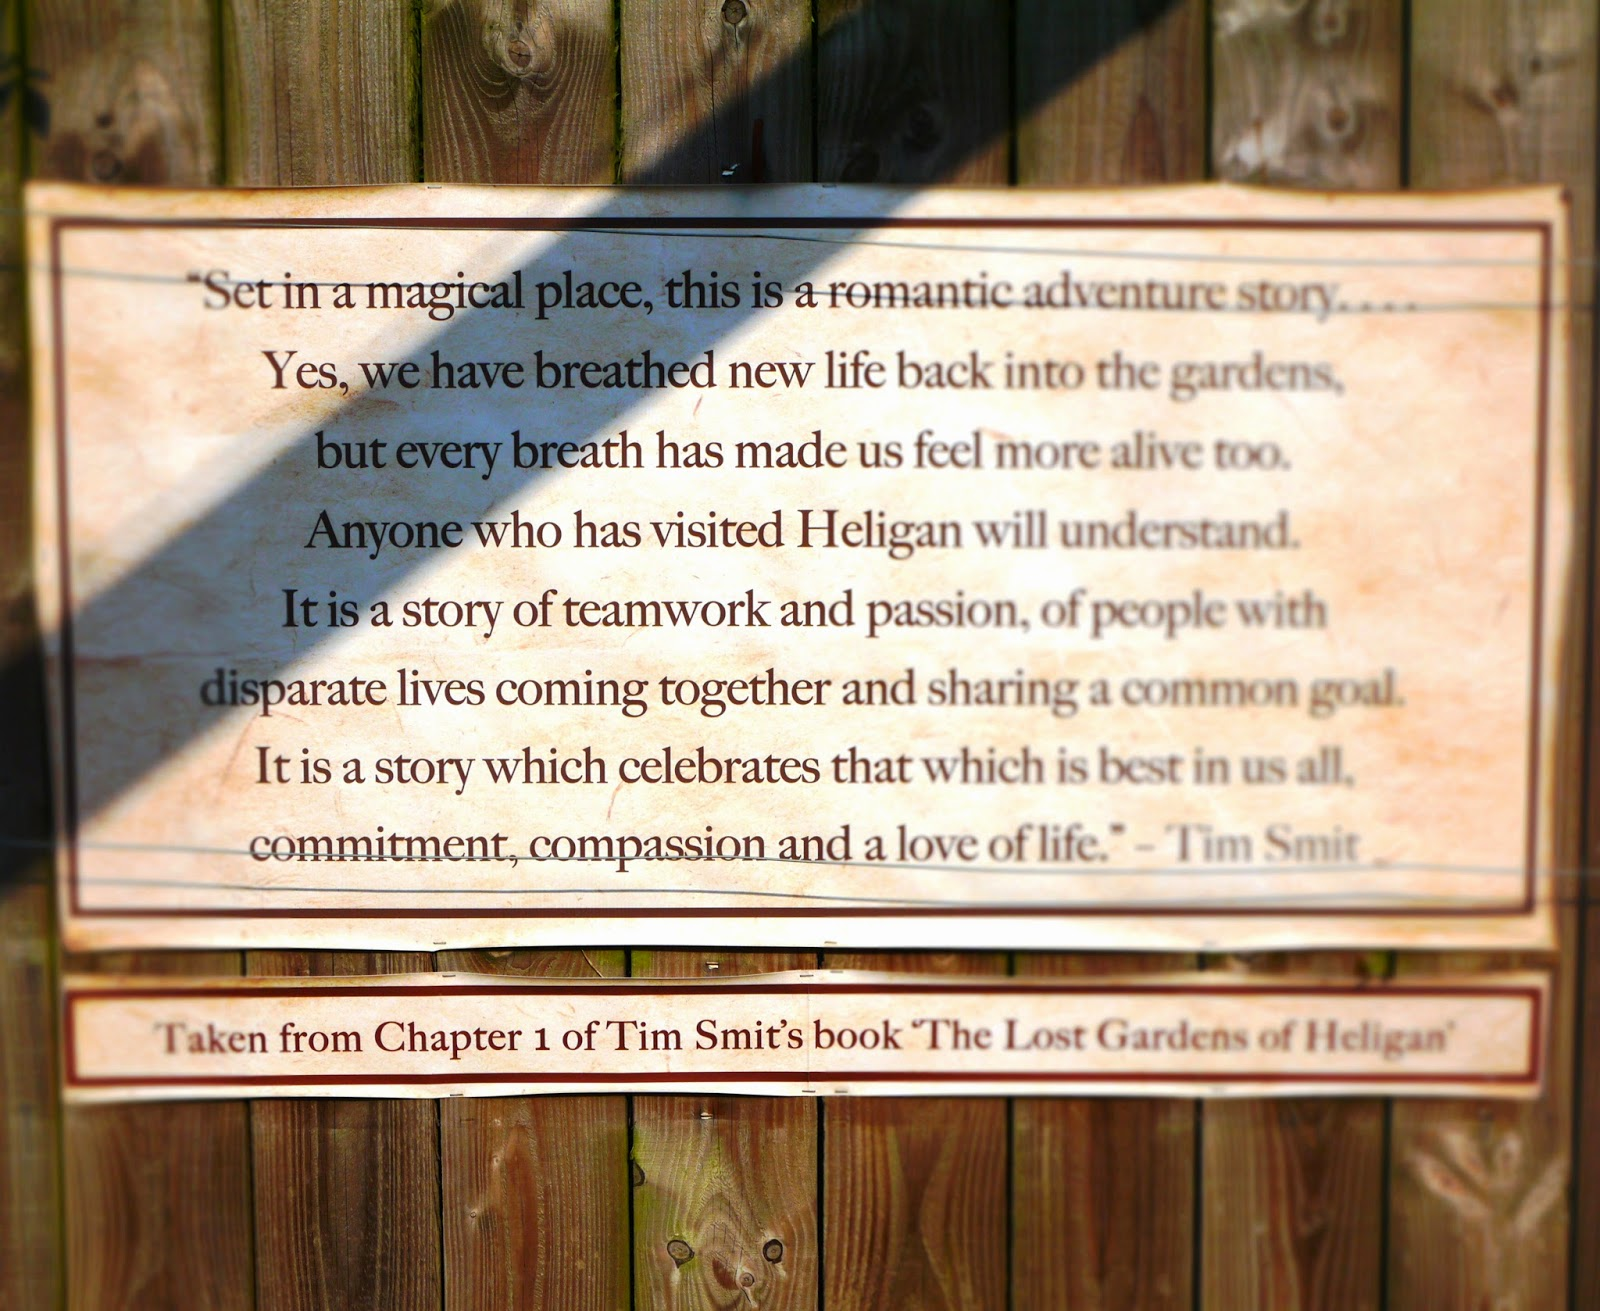 The Lost Gardens of Heligan, Cornwall - Tim Smit's words about the place taken from the book